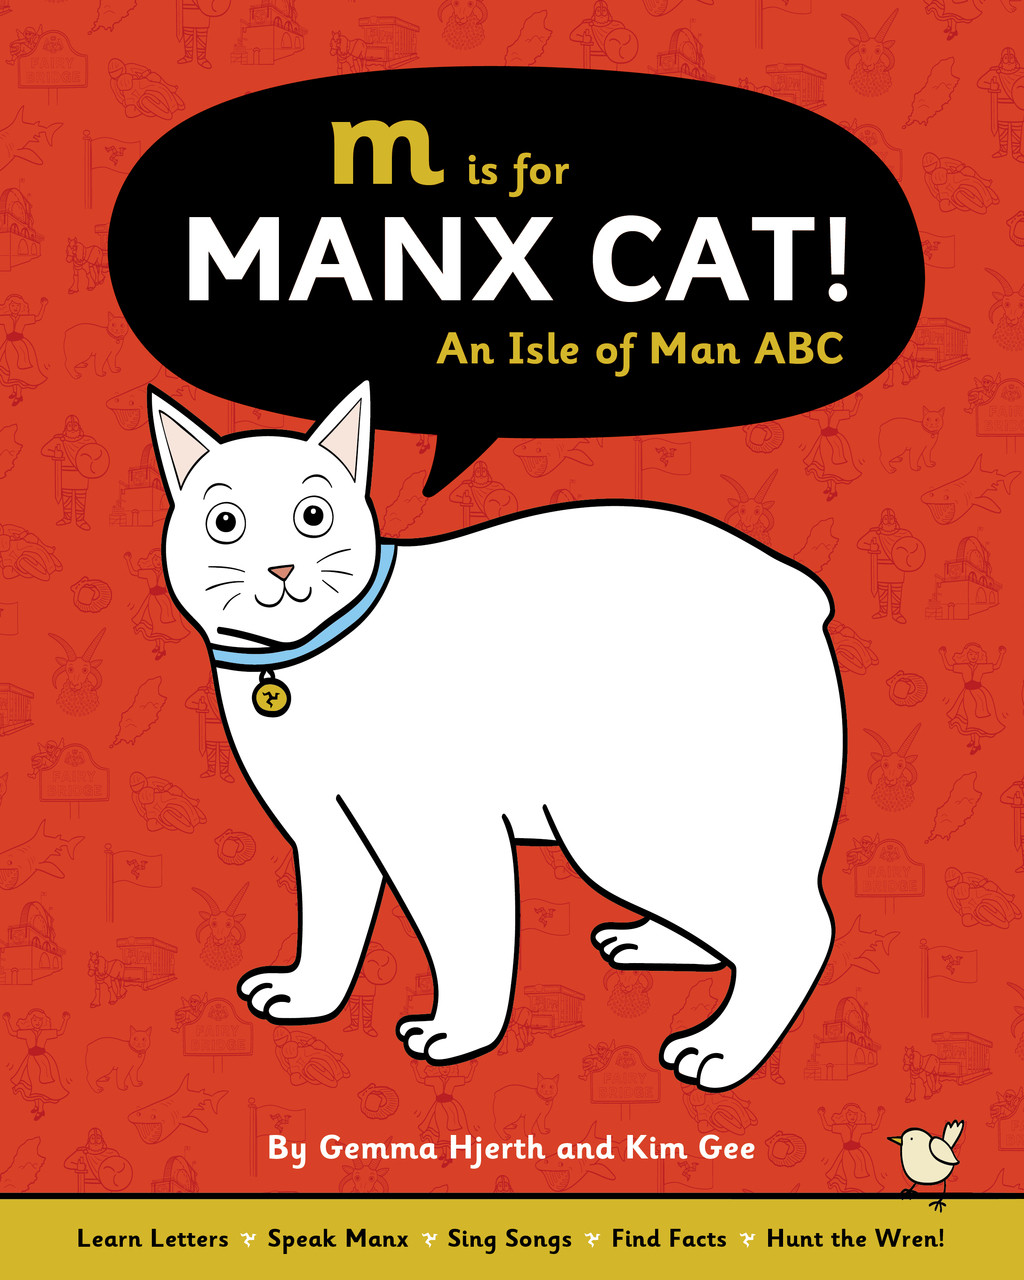 M is for MANX CAT! An Isle of Man ABC for Children